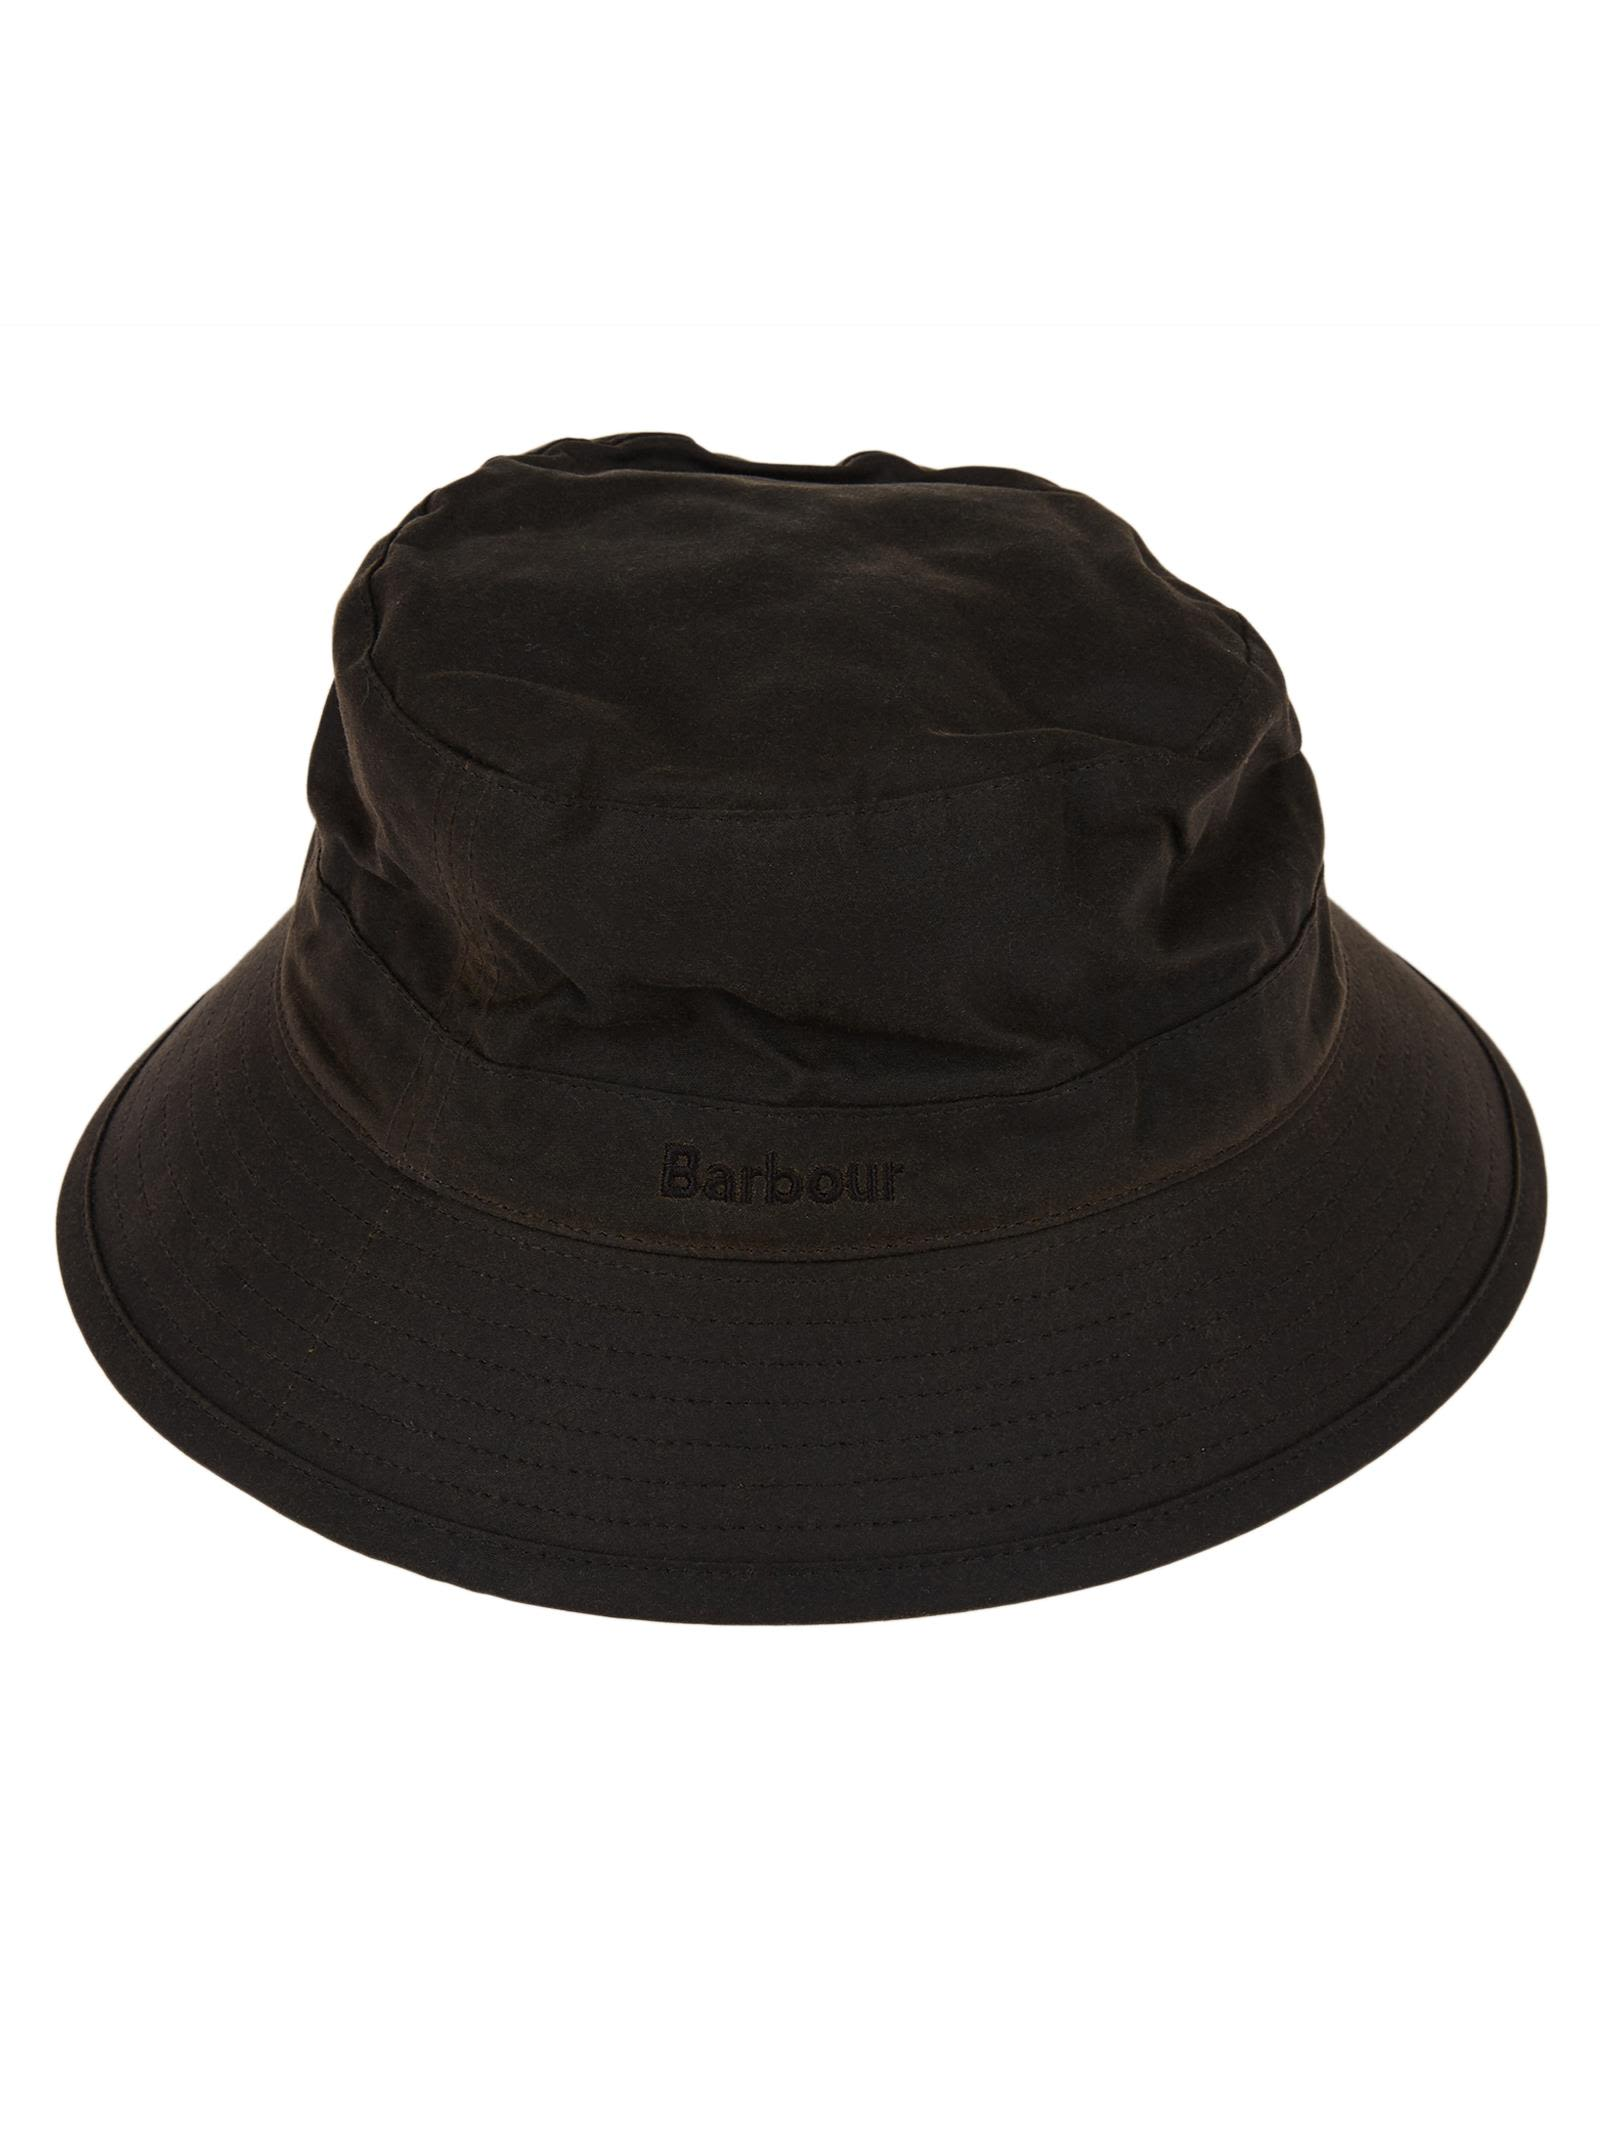 efc46e7f80c Barbour Embroidered Logo Hat In Olive